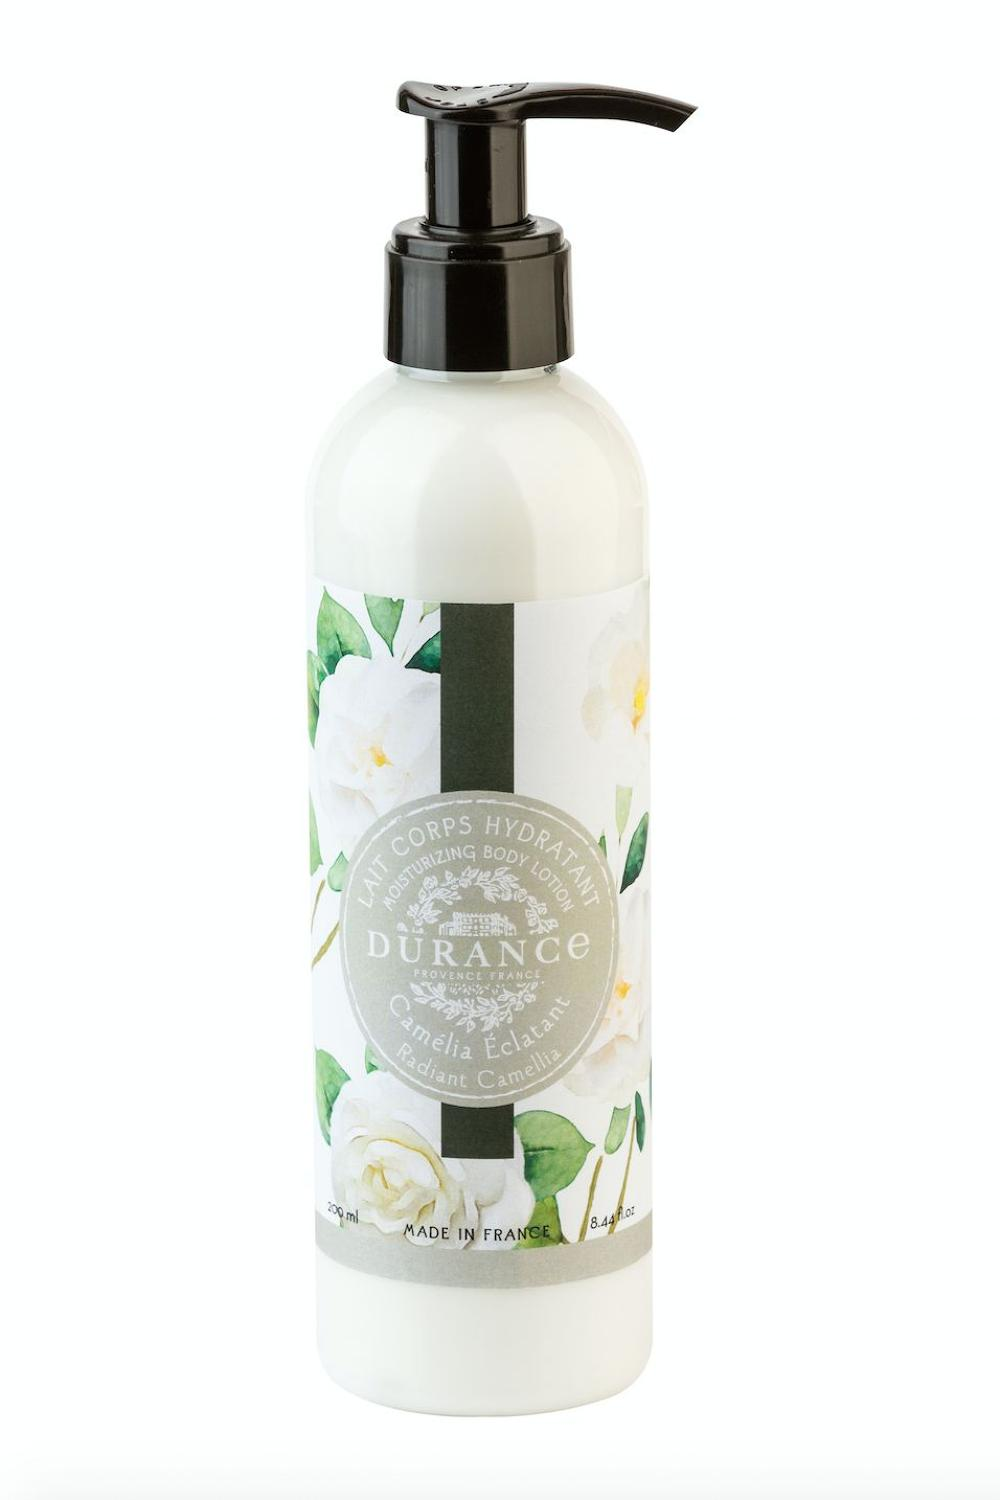 Body Lotion 250ml – Radiant Camellia